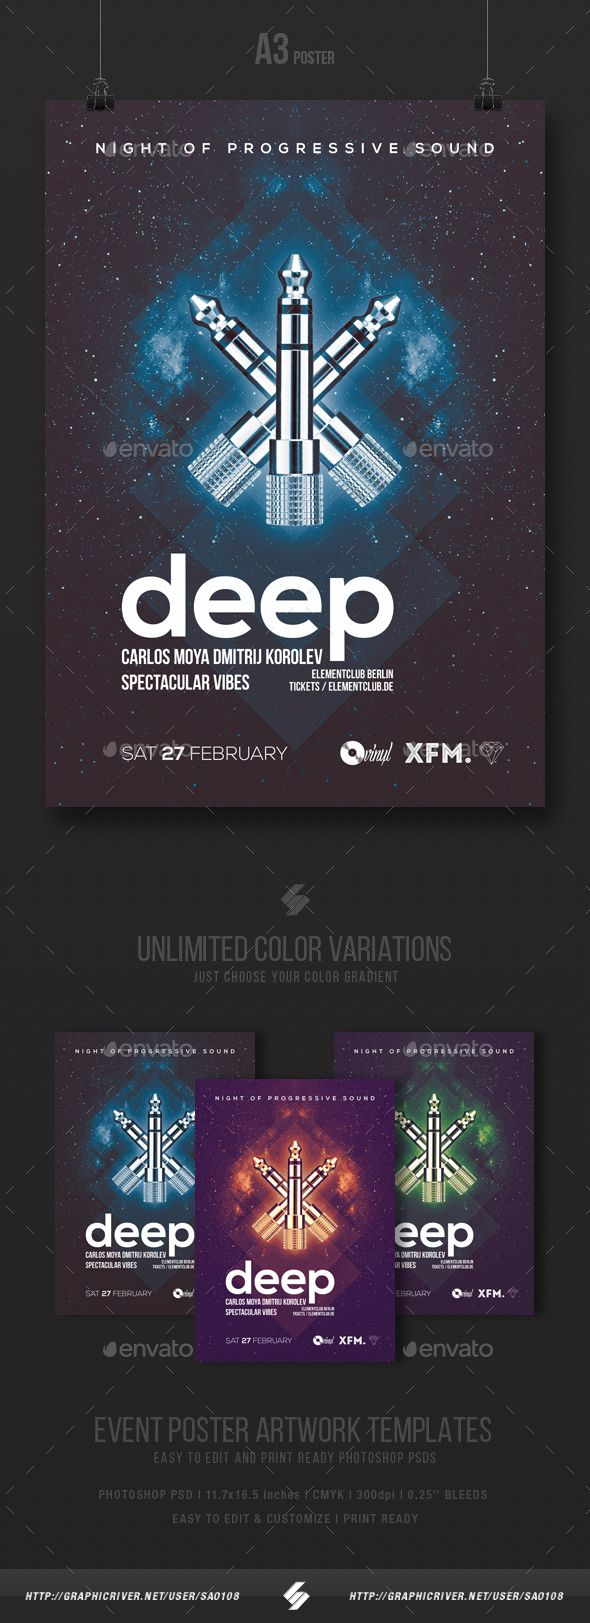 Deep - Progressive Party Flyer / Poster Template A3 | Party flyer ...